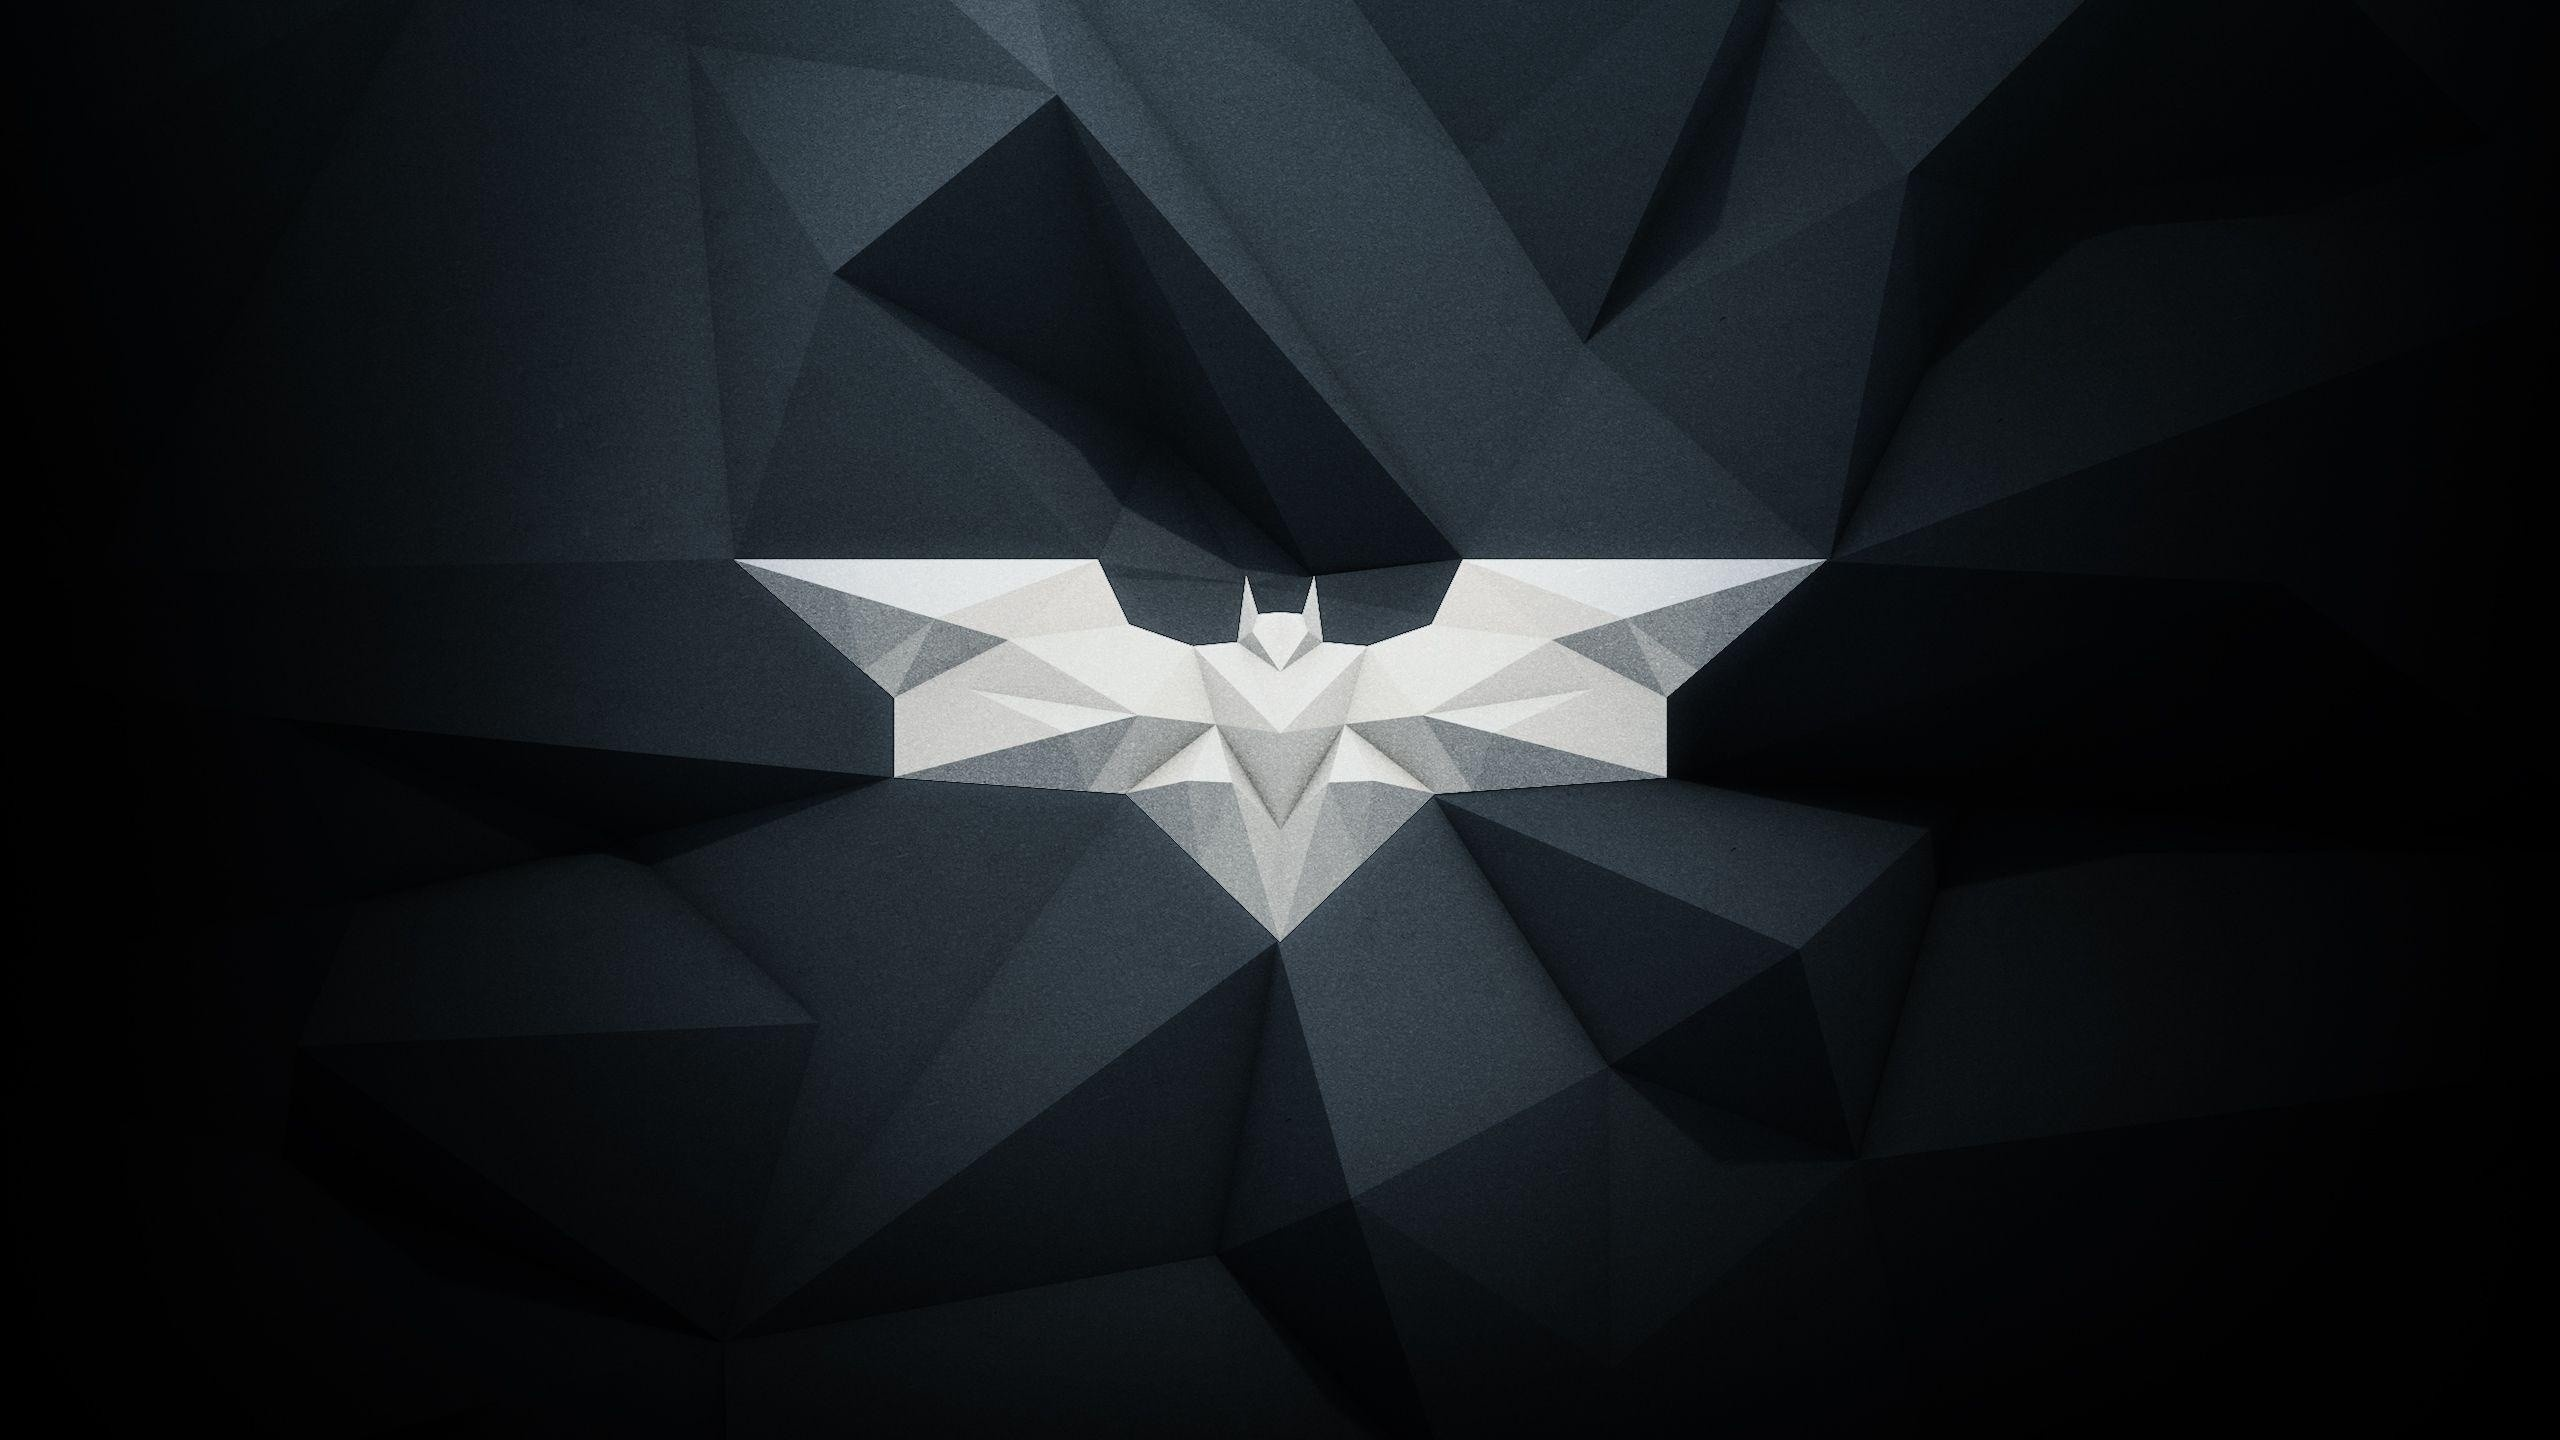 25 hd polygon wallpapers for Cool modern wallpapers